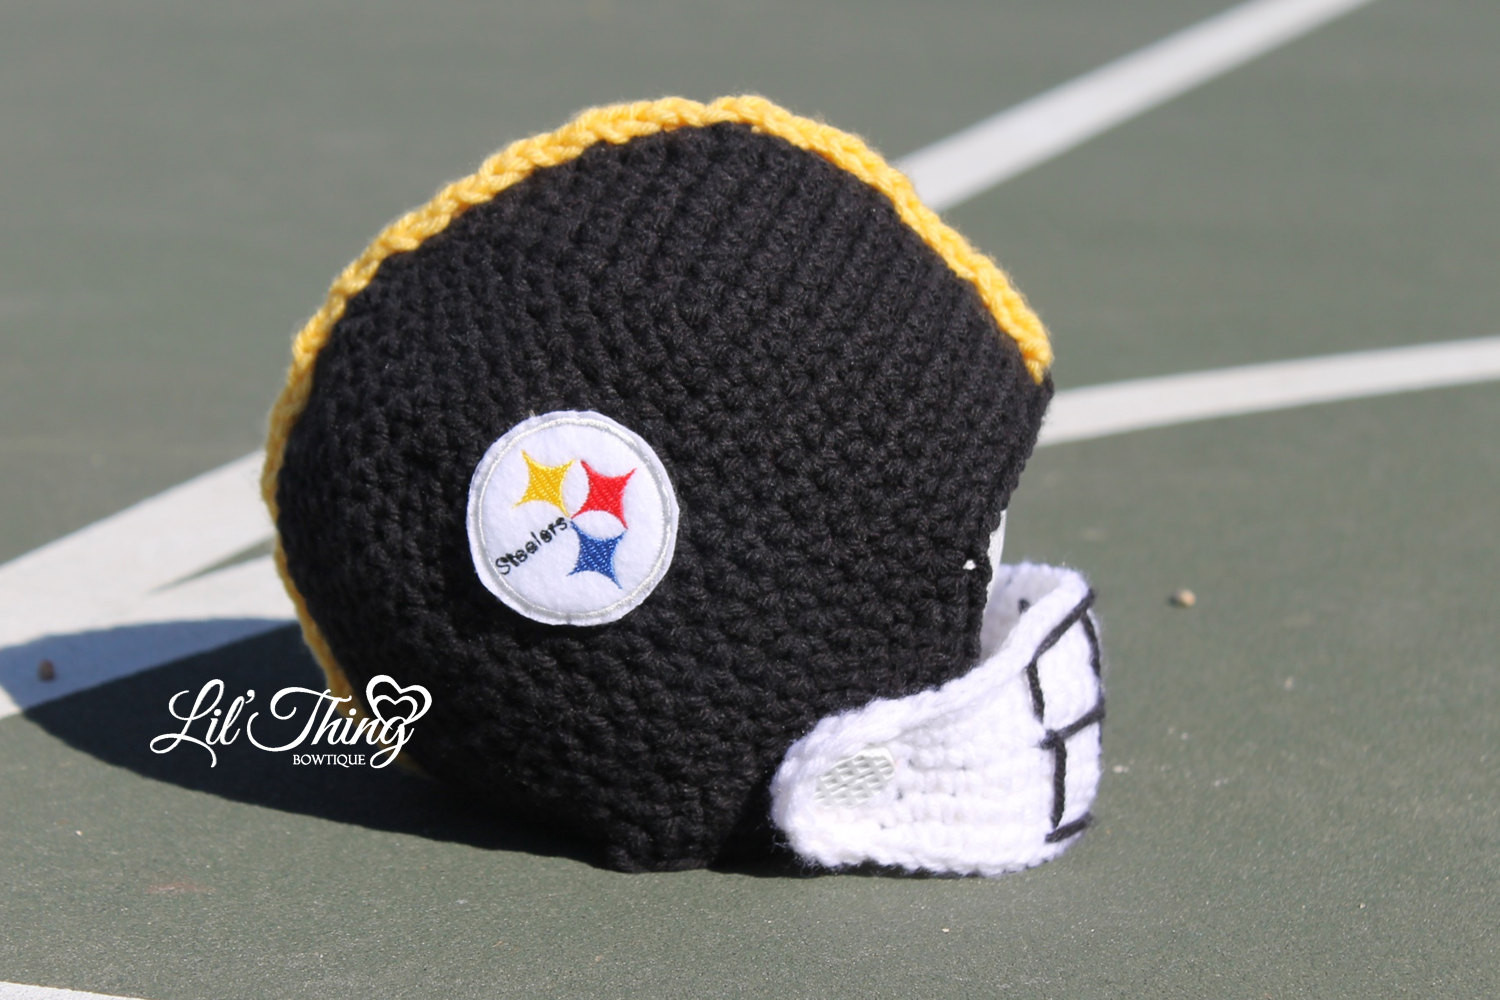 New Football Helmet Crochet Helmet Steelers by Lilthingbowtique Crochet Football Helmets Of Lovely 48 Pics Crochet Football Helmets